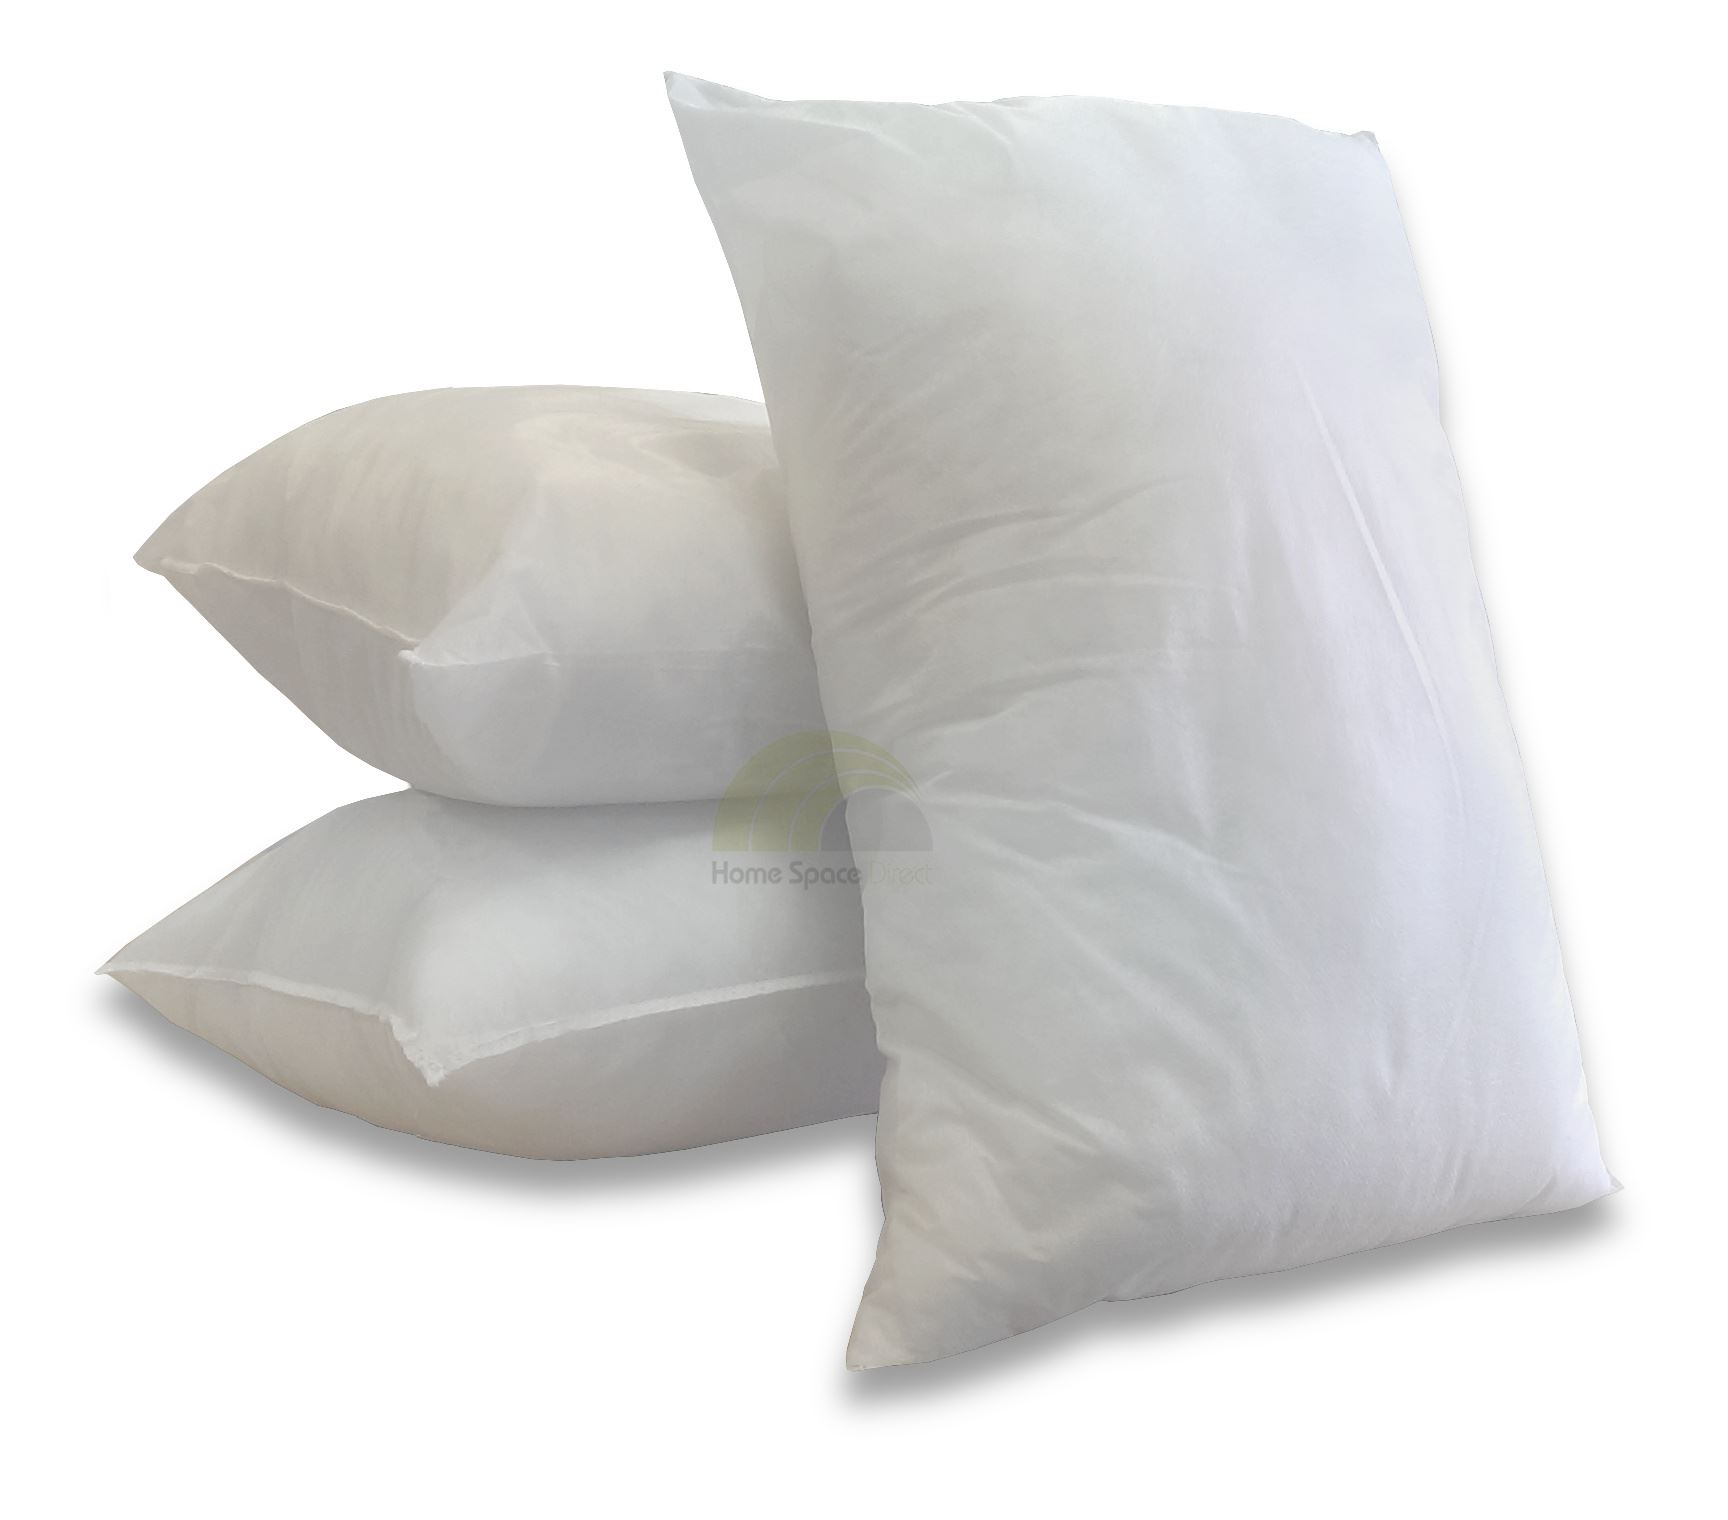 Luxury goose or duck or hungarian feather down pillow for Duck or goose feather pillows which is better